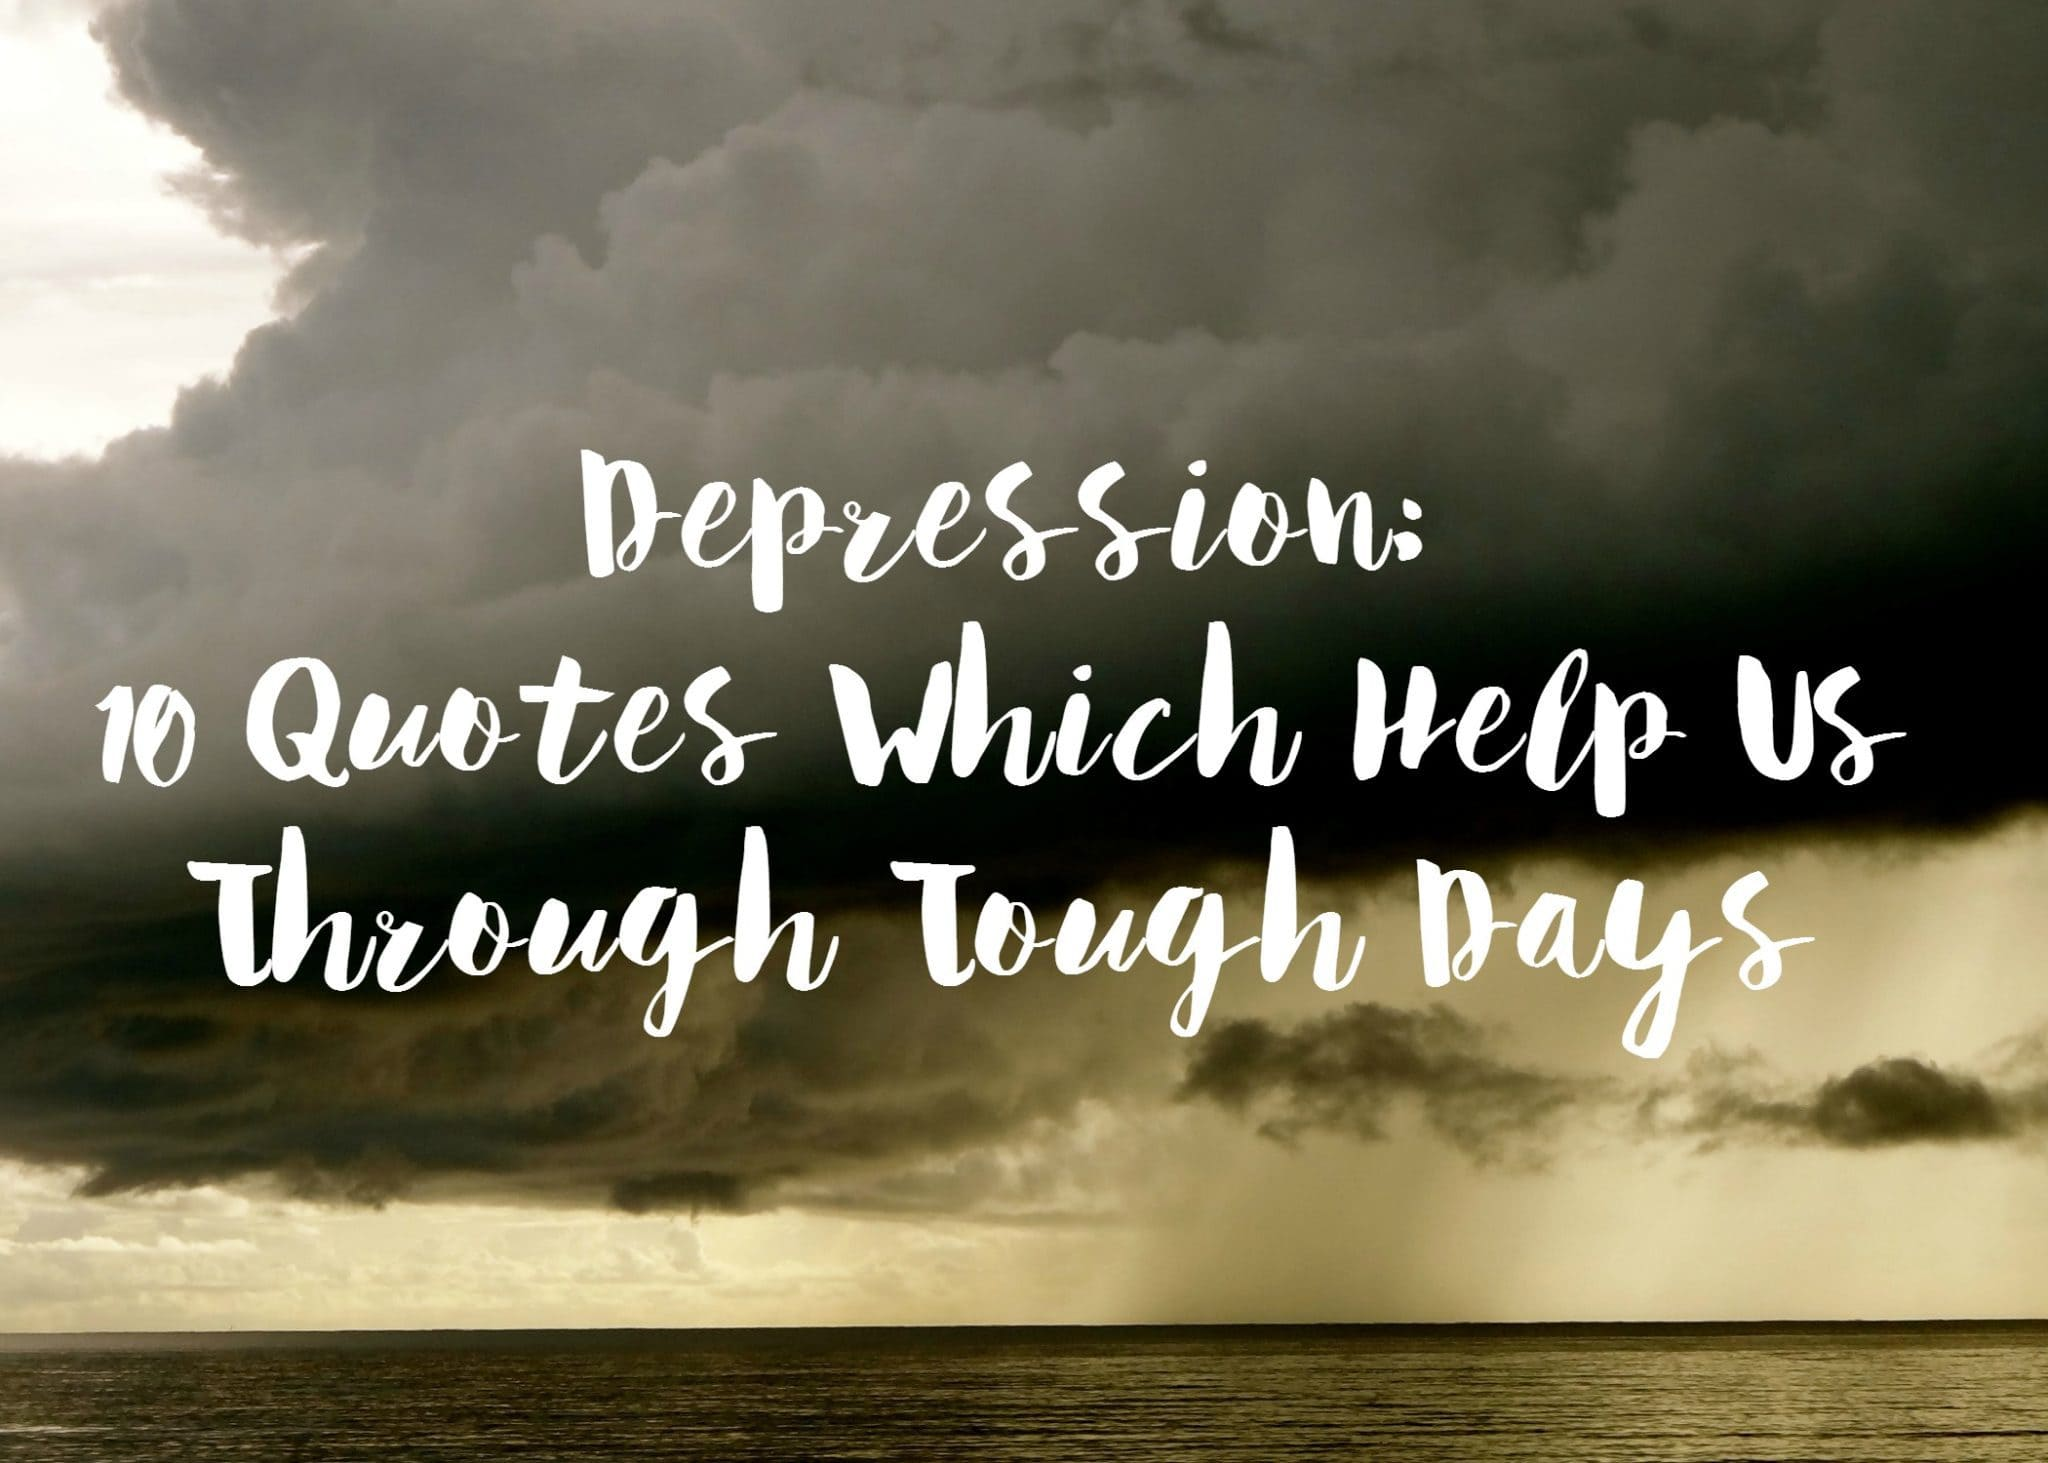 Quotes To Help Depression Extraordinary Depression 10 Quotes Which Help Us Through Tough Days